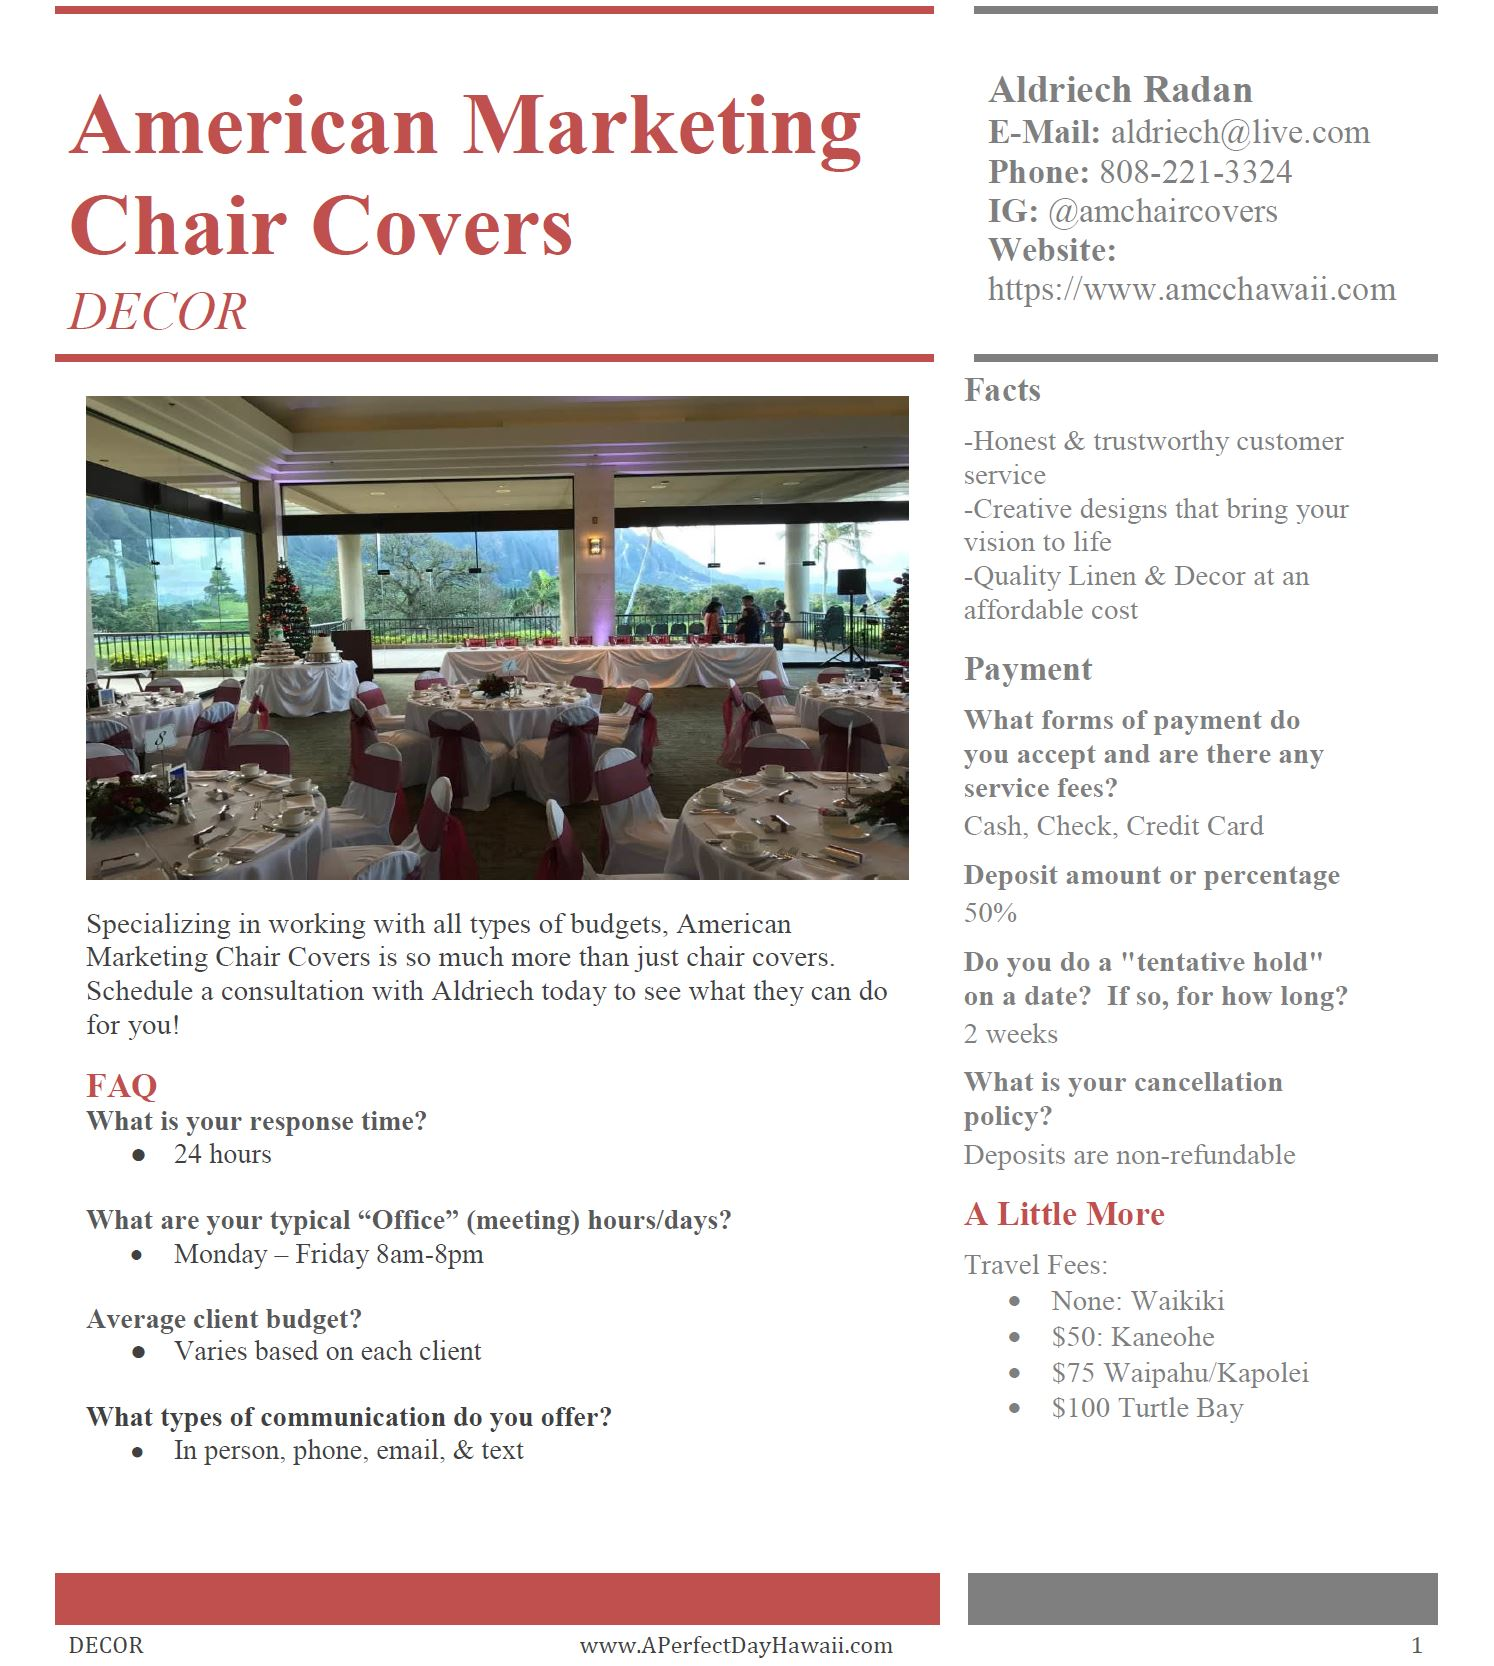 american marketing chair covers hawaii study table and decor fact sheets a perfect day 1 amcc as of 10 18 jpg